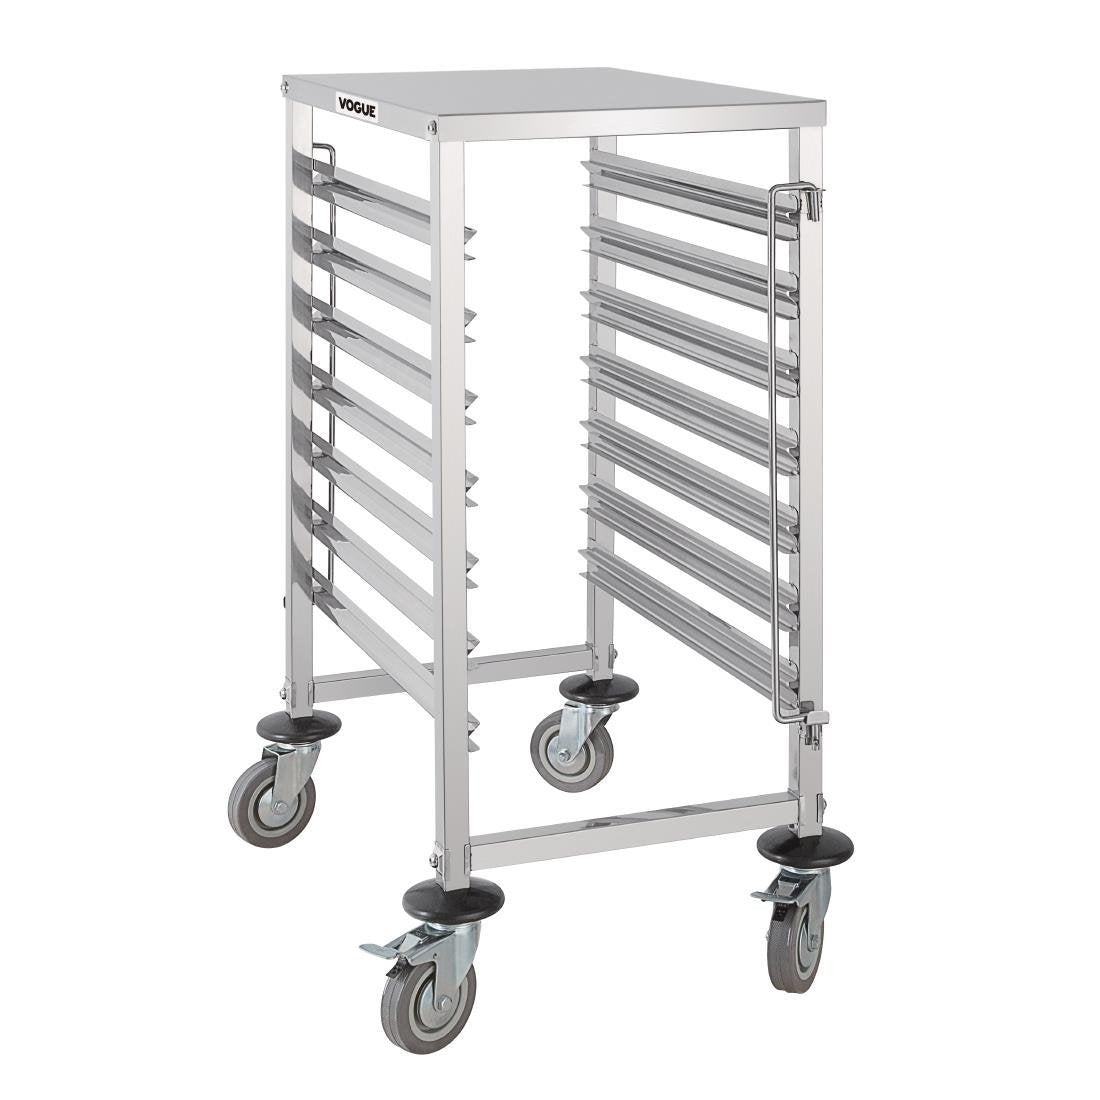 Vogue Gastronorm Racking Trolley 7 Level GG498 Racking Trolleys